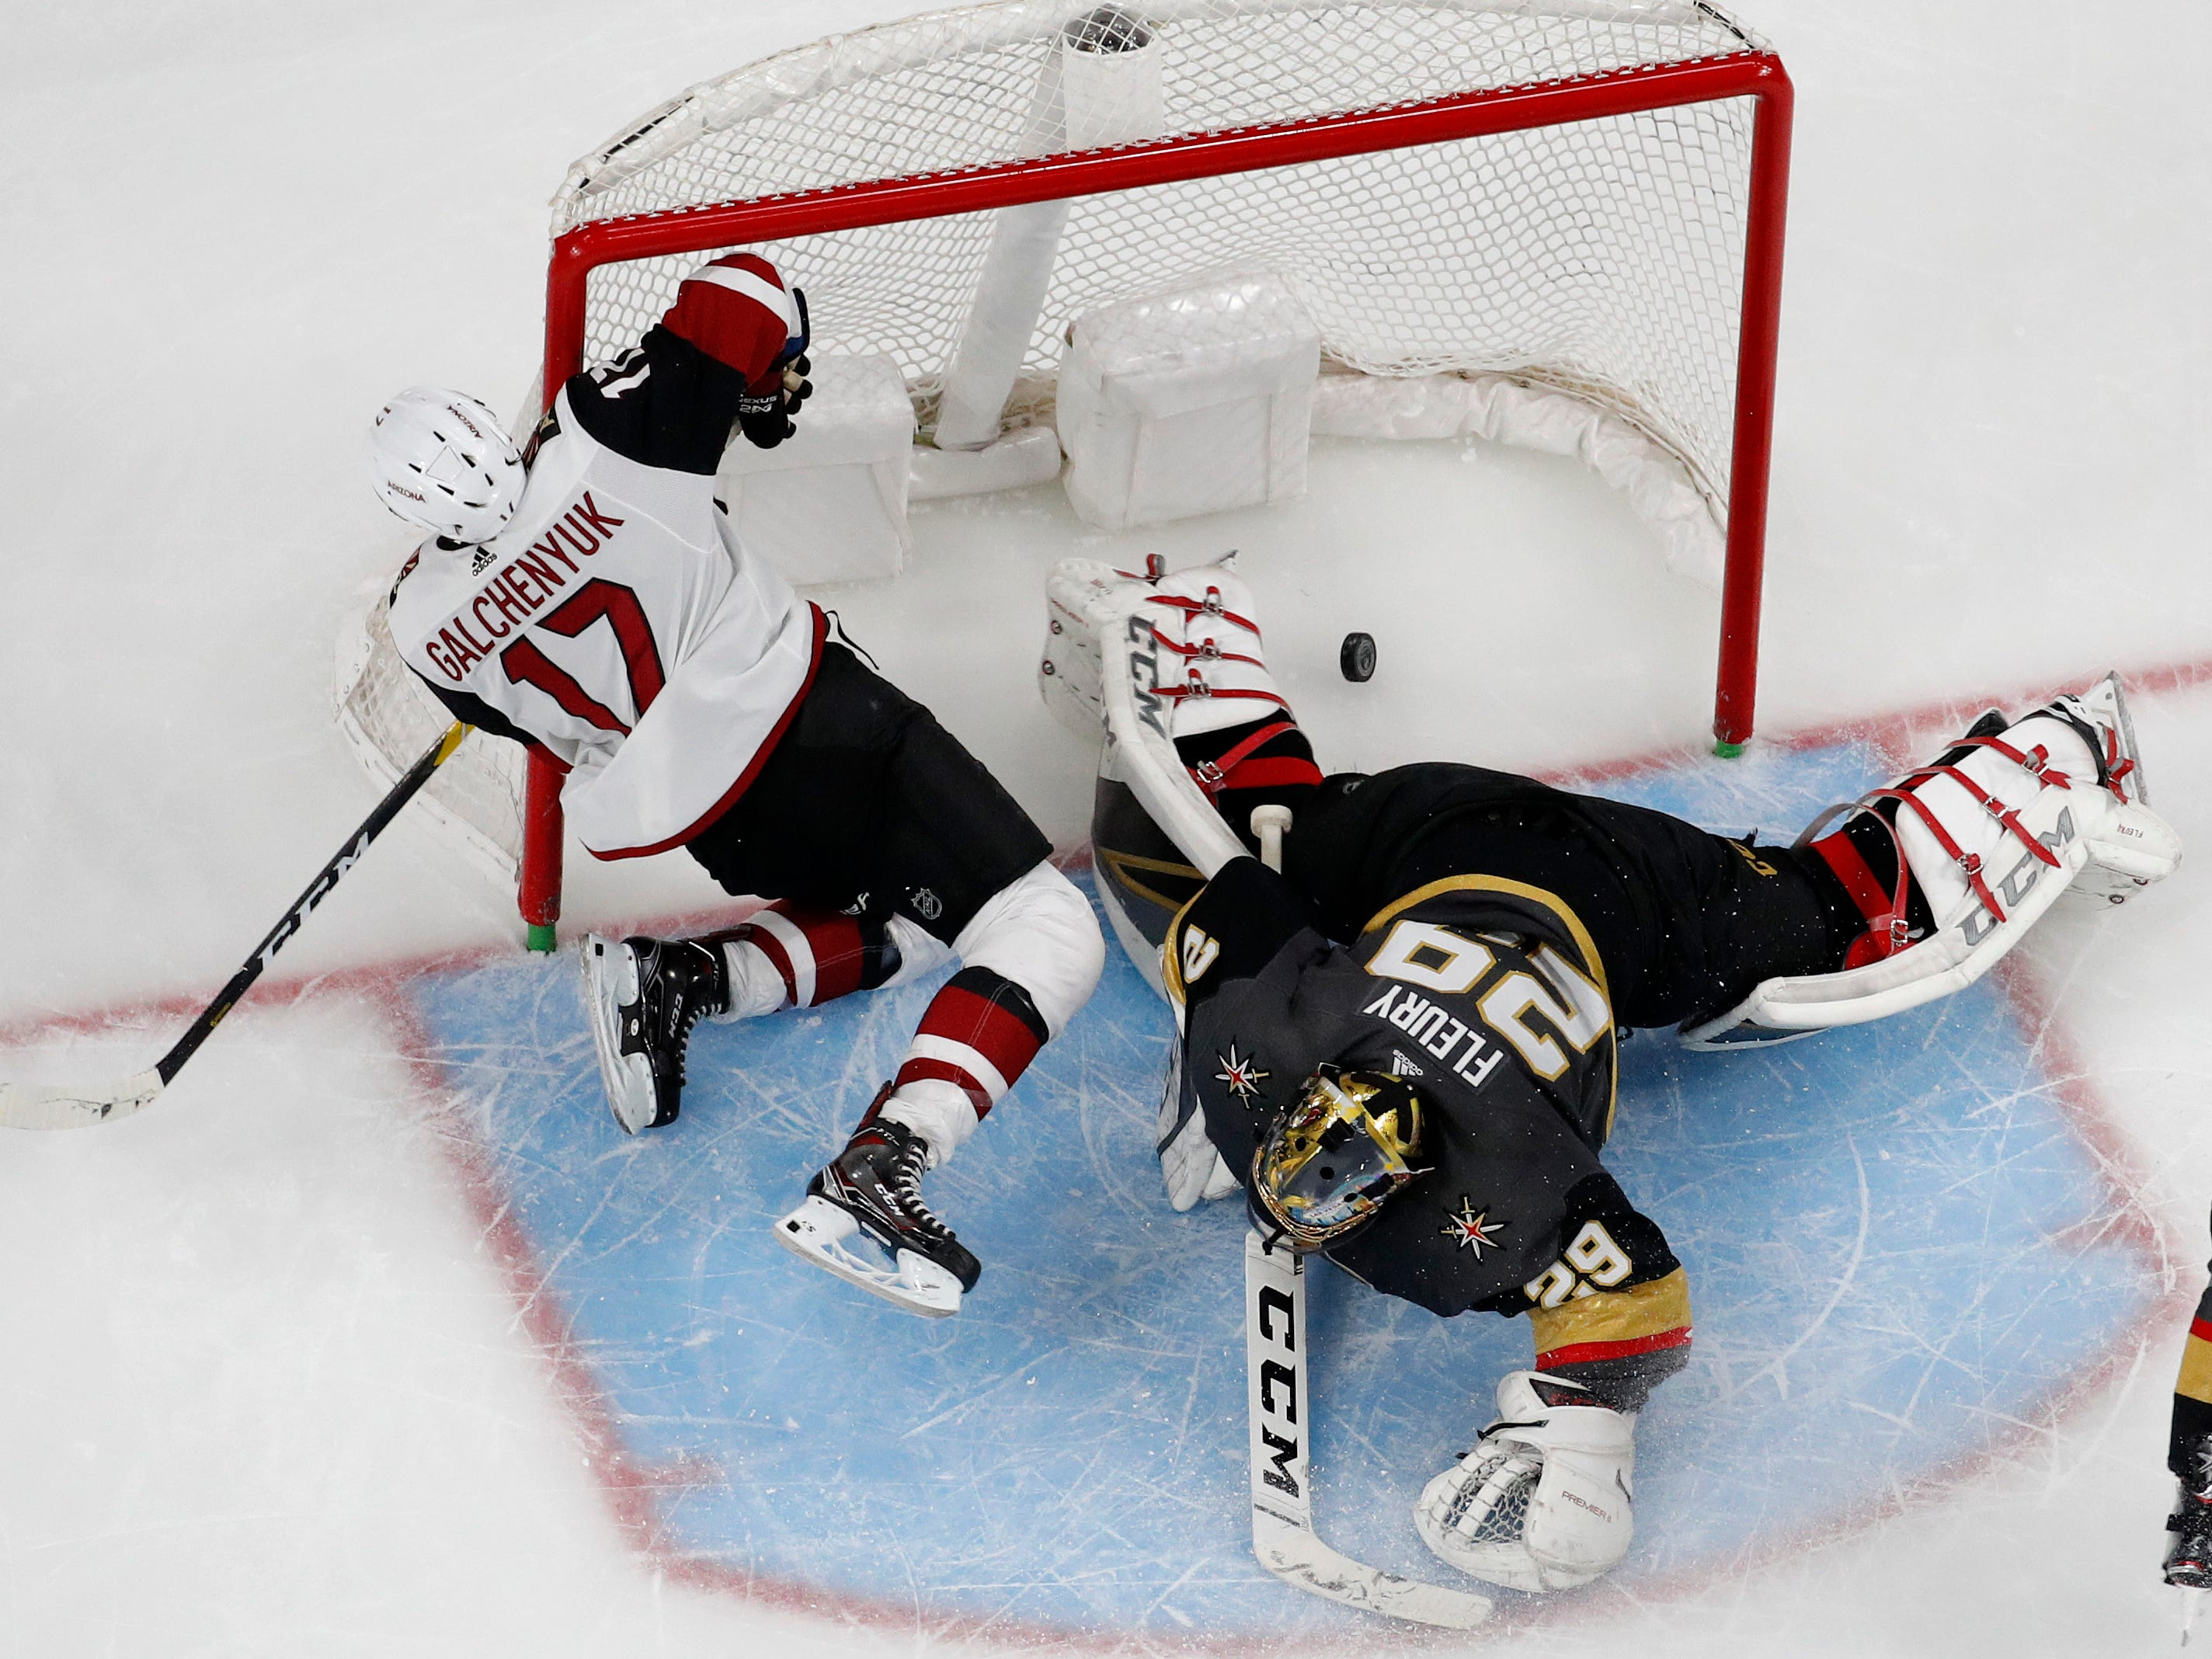 Arizona Coyotes center Alex Galchenyuk (17) slides into the net after scoring against Vegas Golden Knights goaltender Marc-Andre Fleury (29) during the second period of an NHL hockey game Tuesday, Feb. 12, 2019, in Las Vegas. (AP Photo/John Locher)